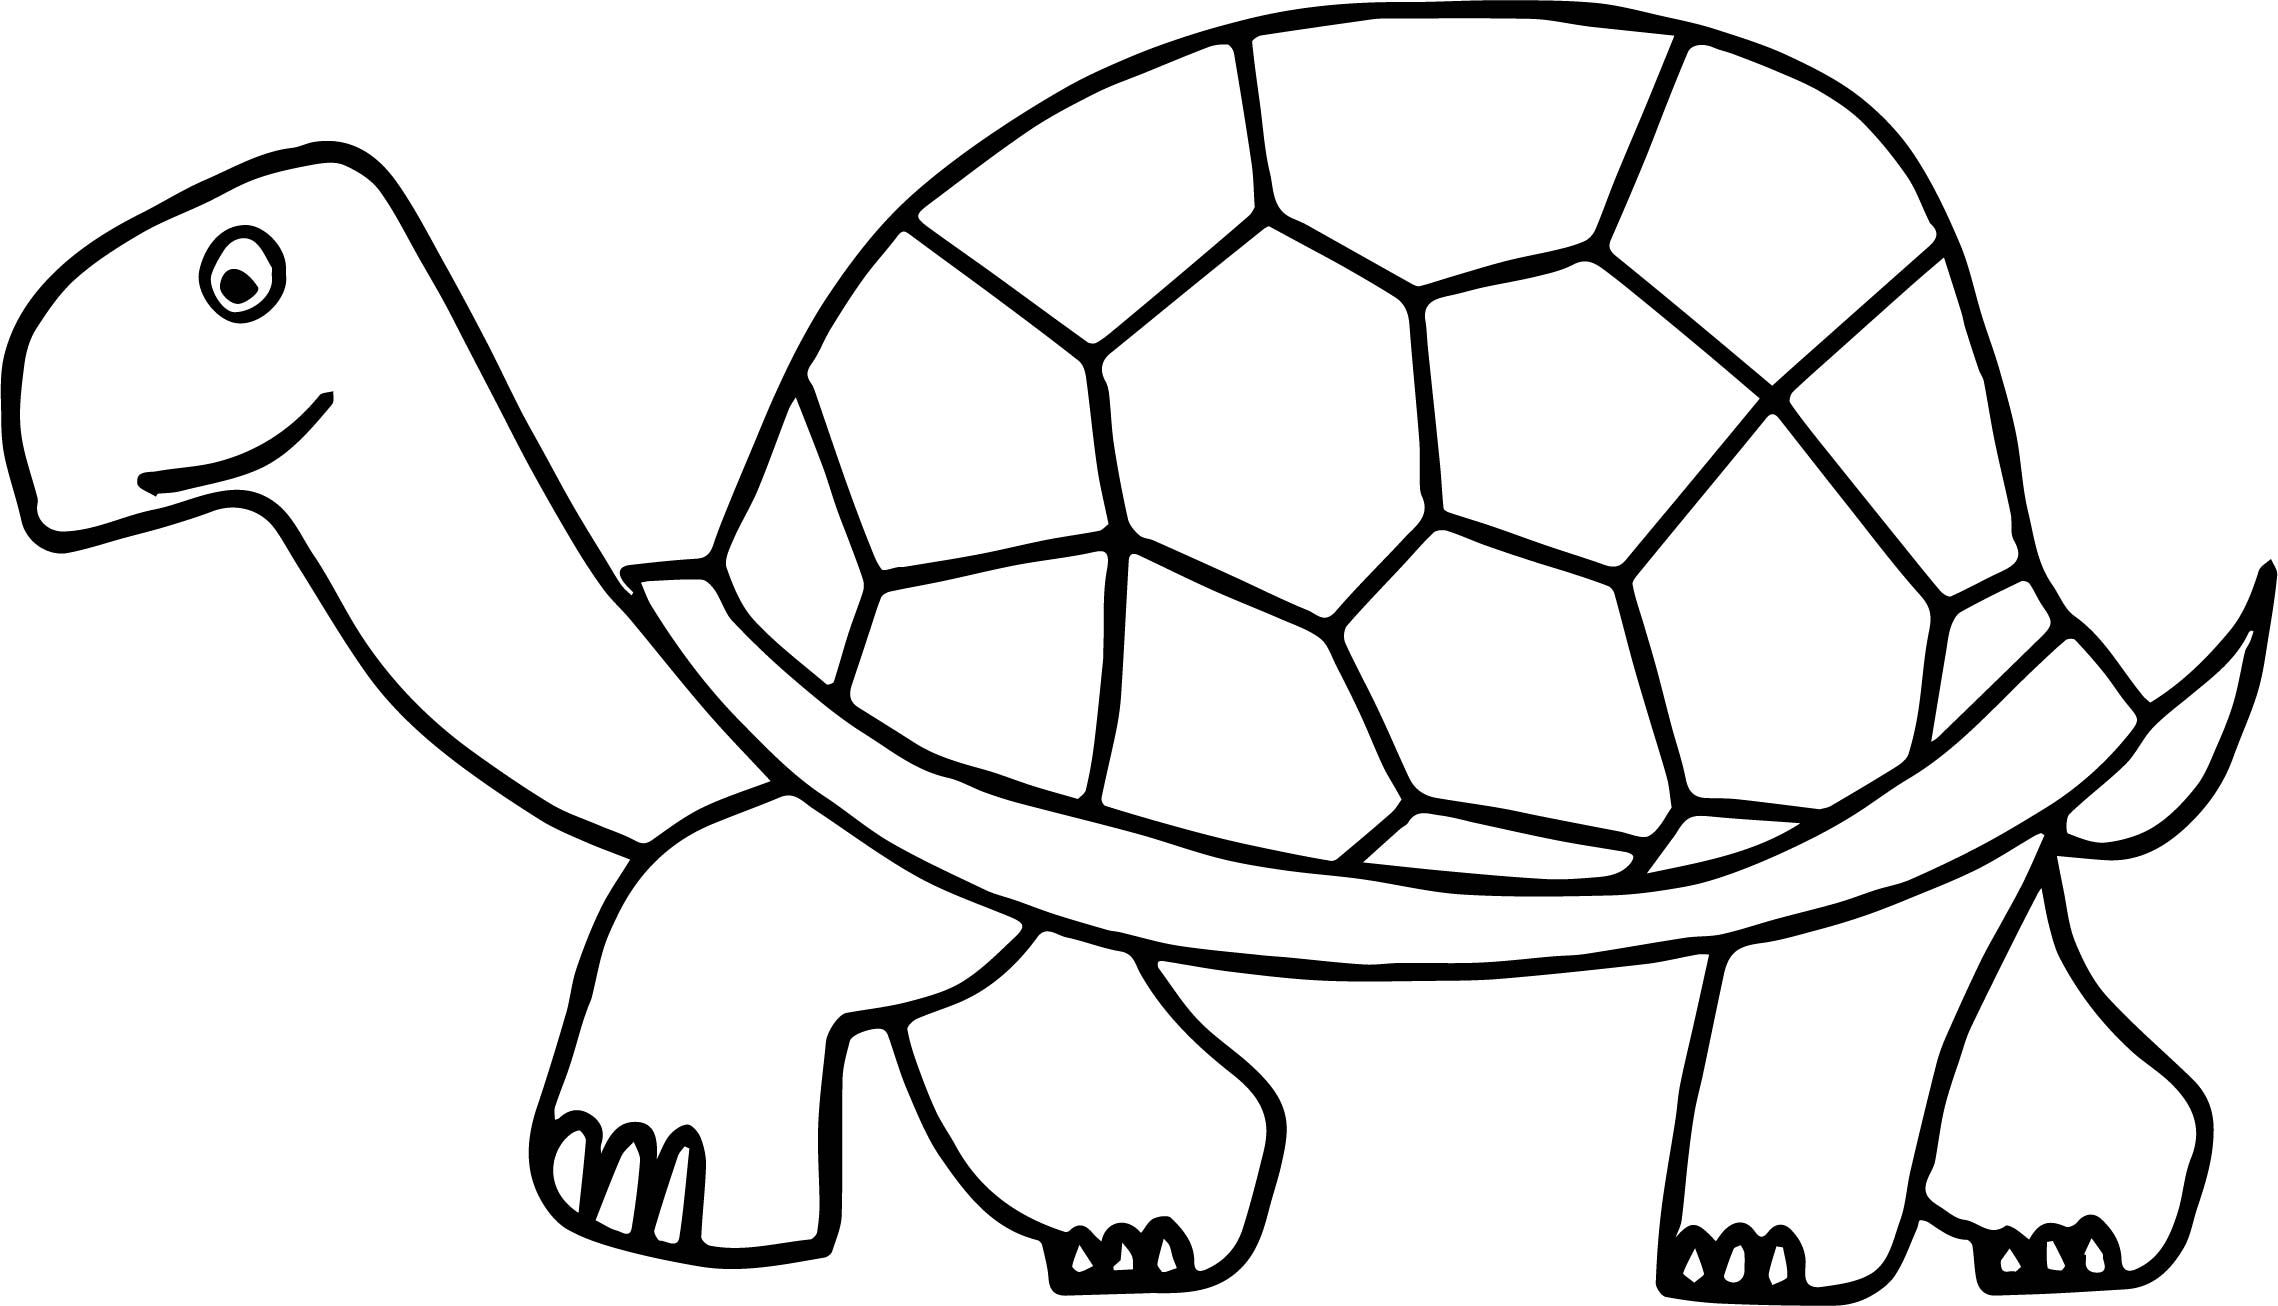 Cool Walking Tortoise Turtle Coloring Page Tortoise Drawing